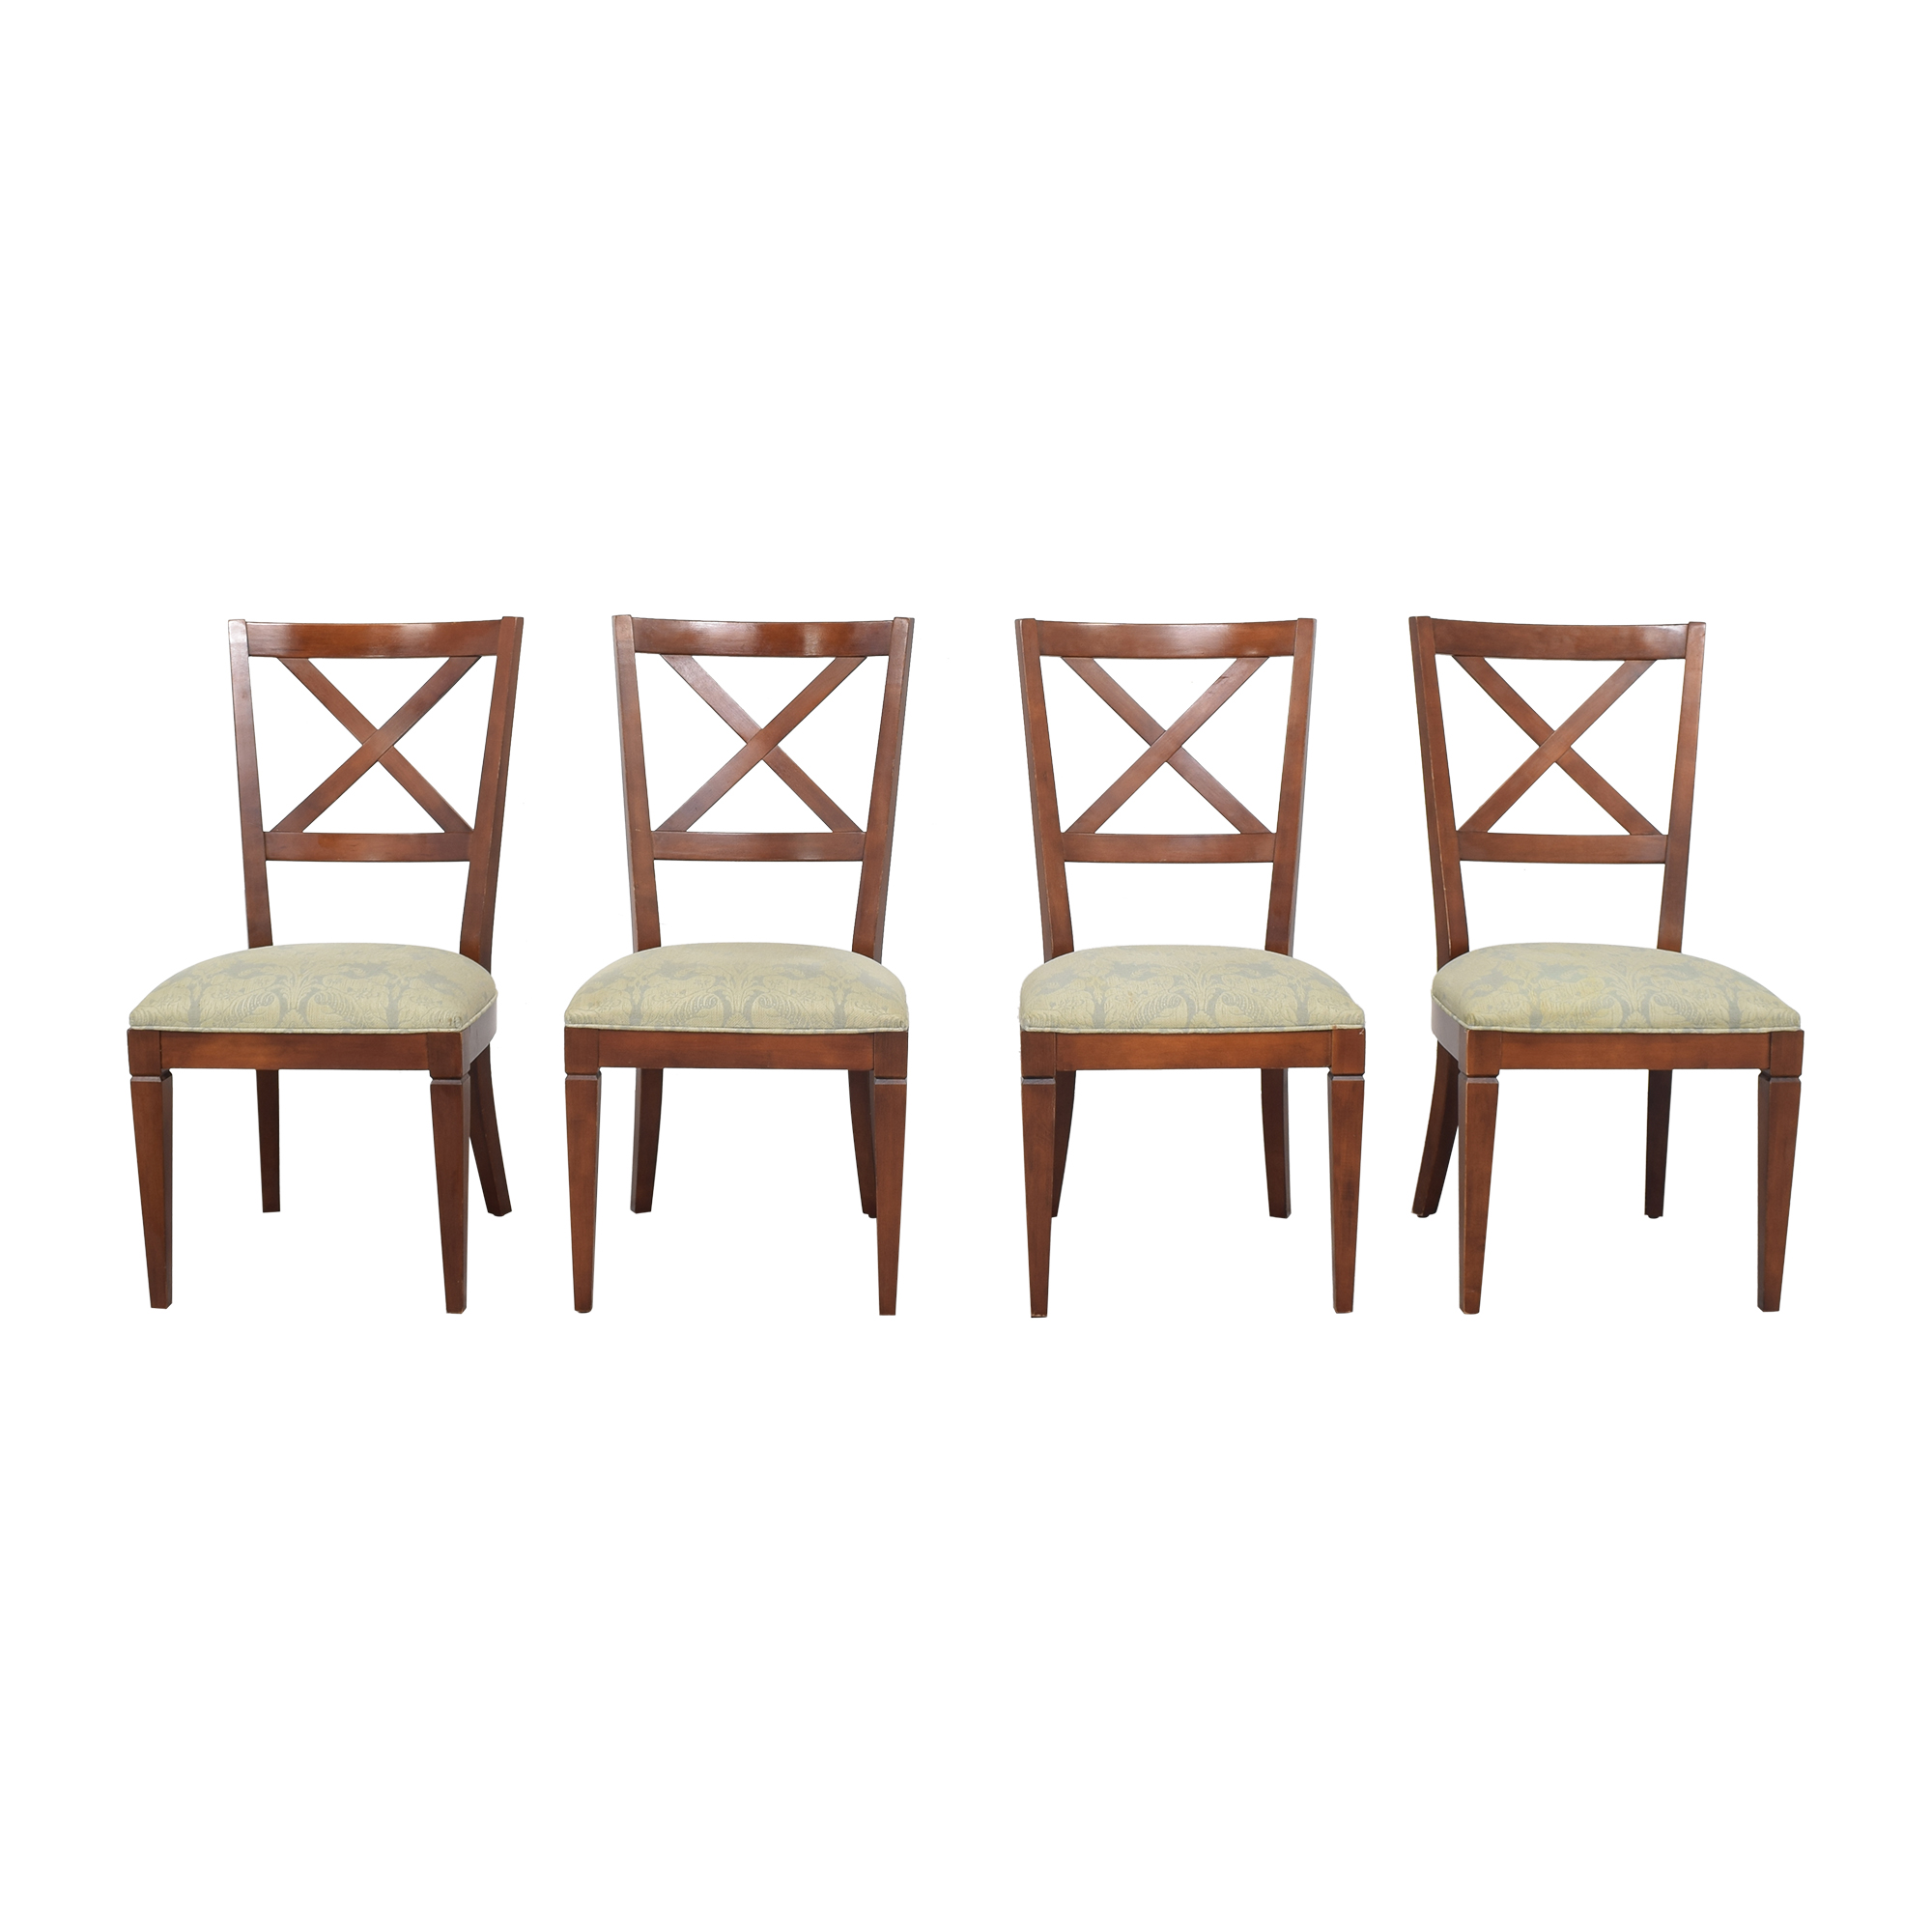 Ethan Allen Dining Chairs / Chairs